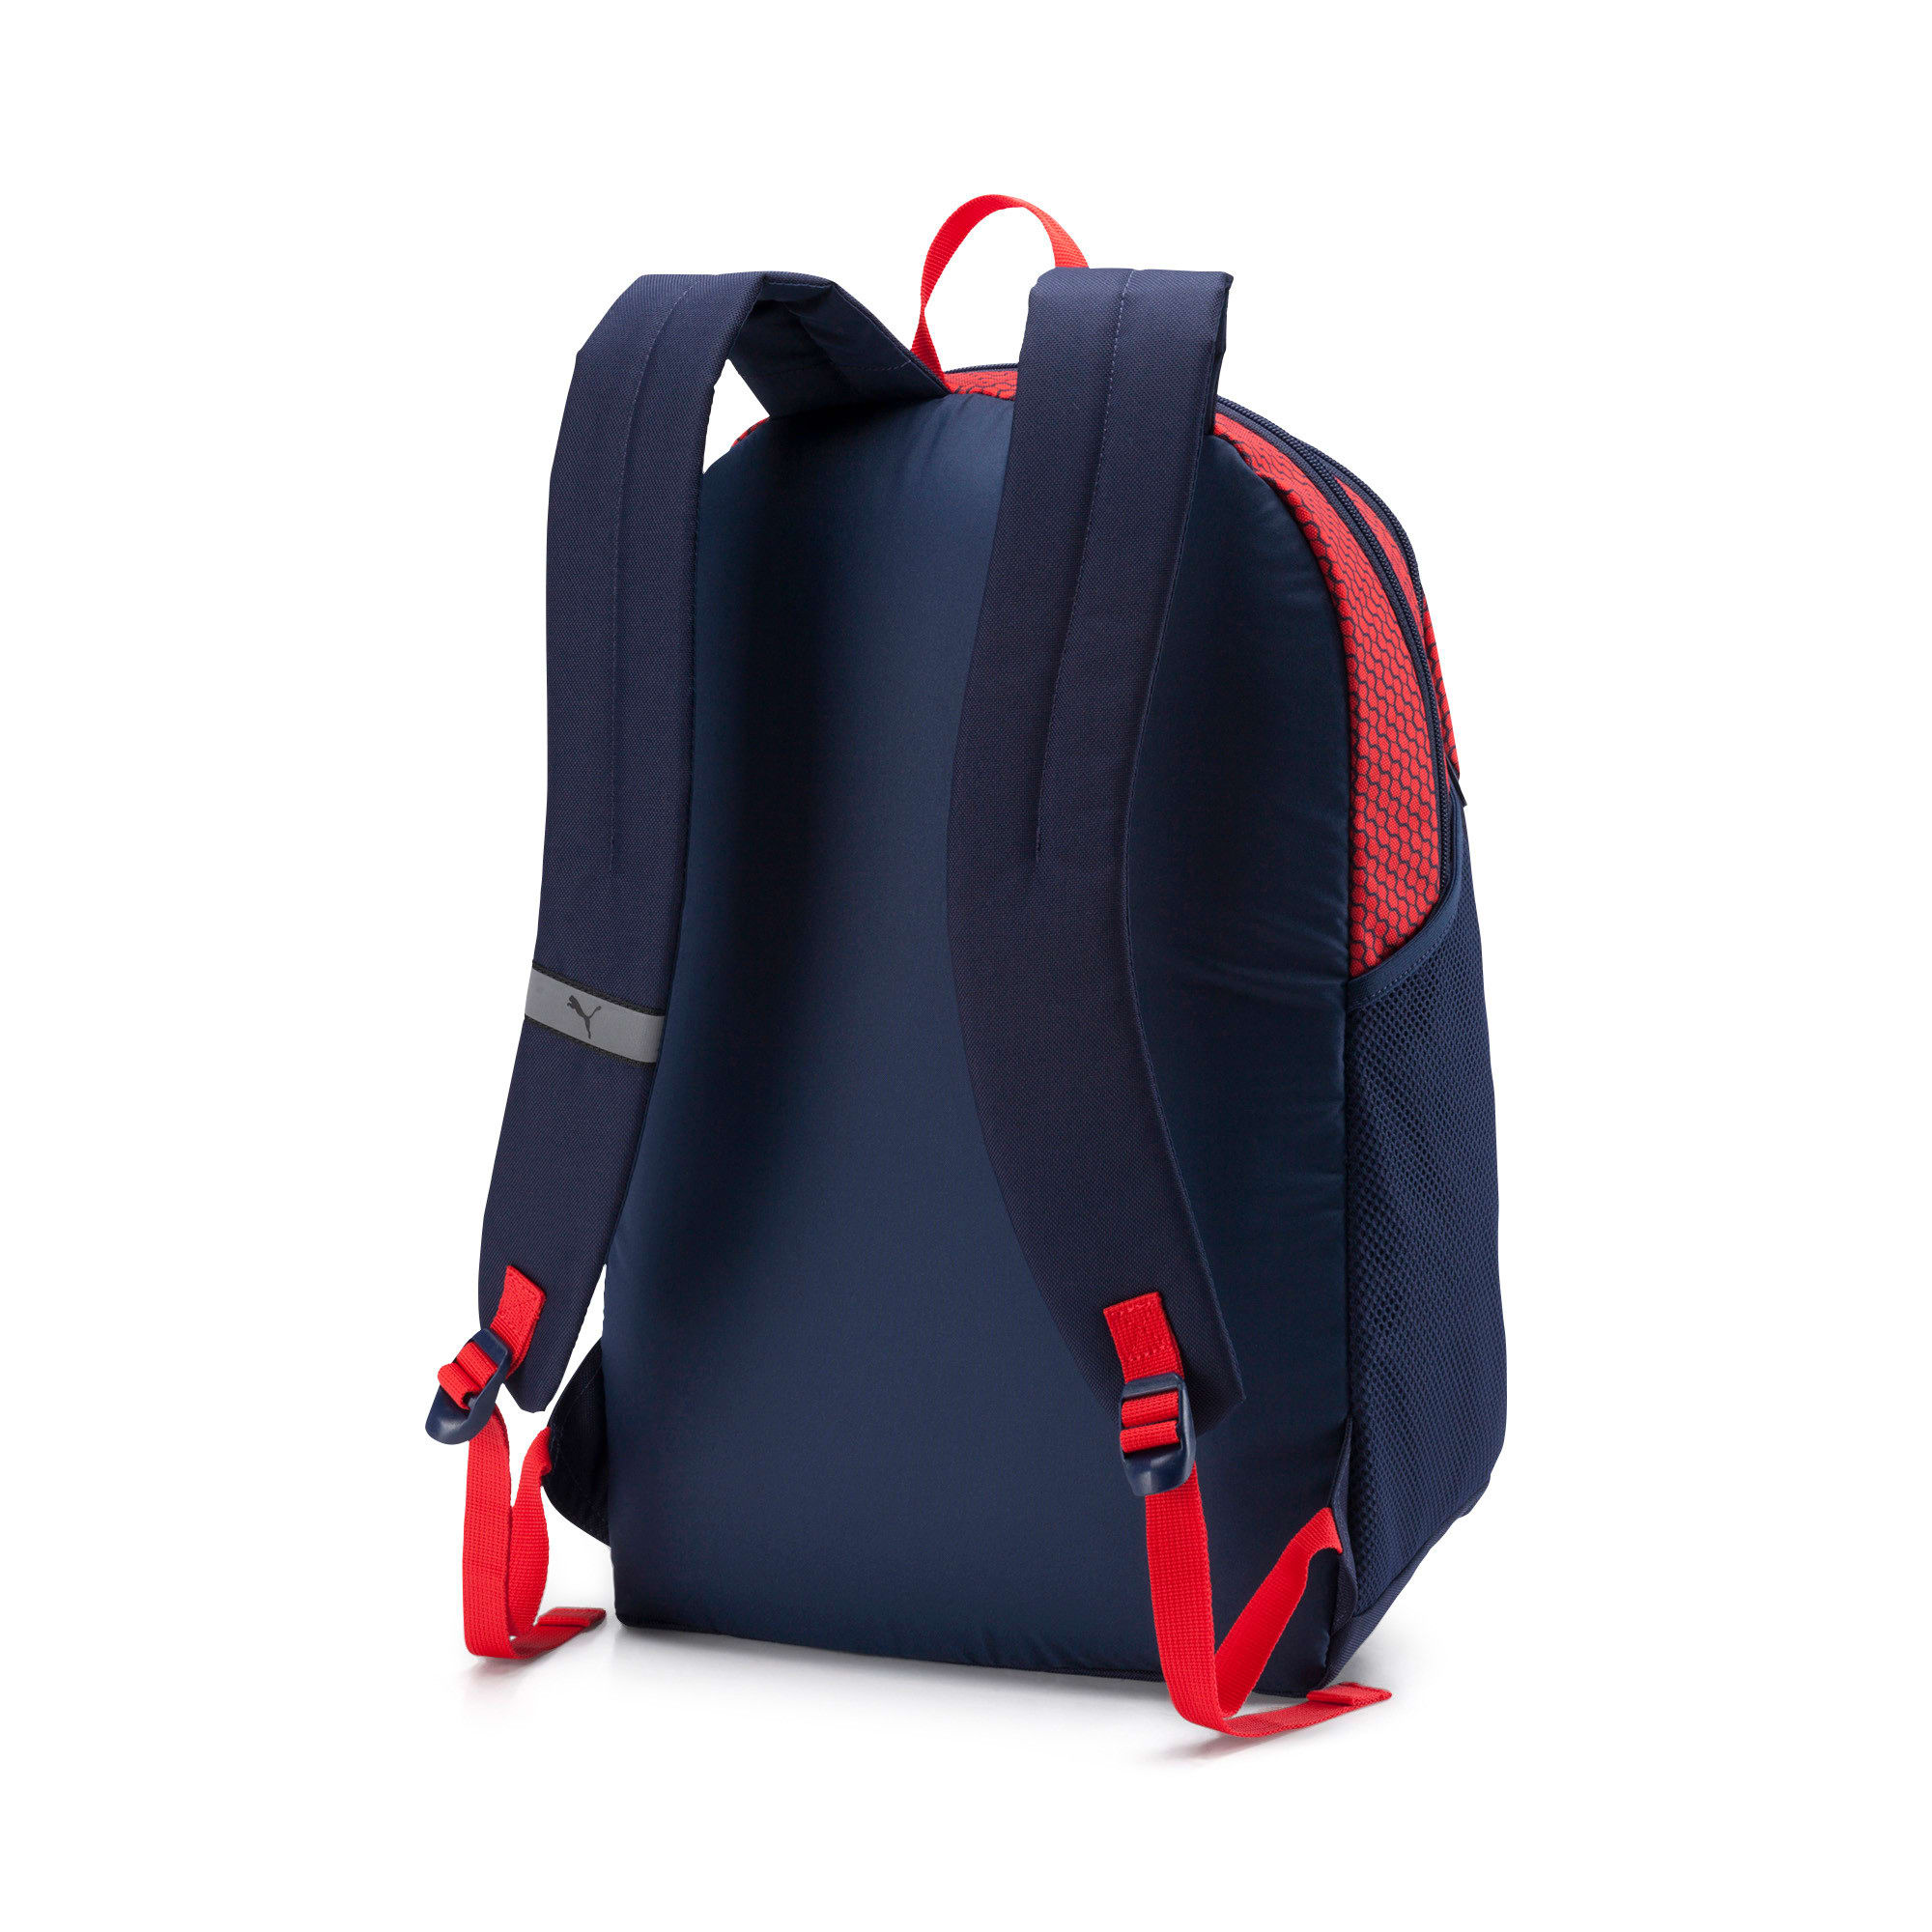 Thumbnail 2 of Beta Backpack, High Risk Red-Peacoat, medium-IND